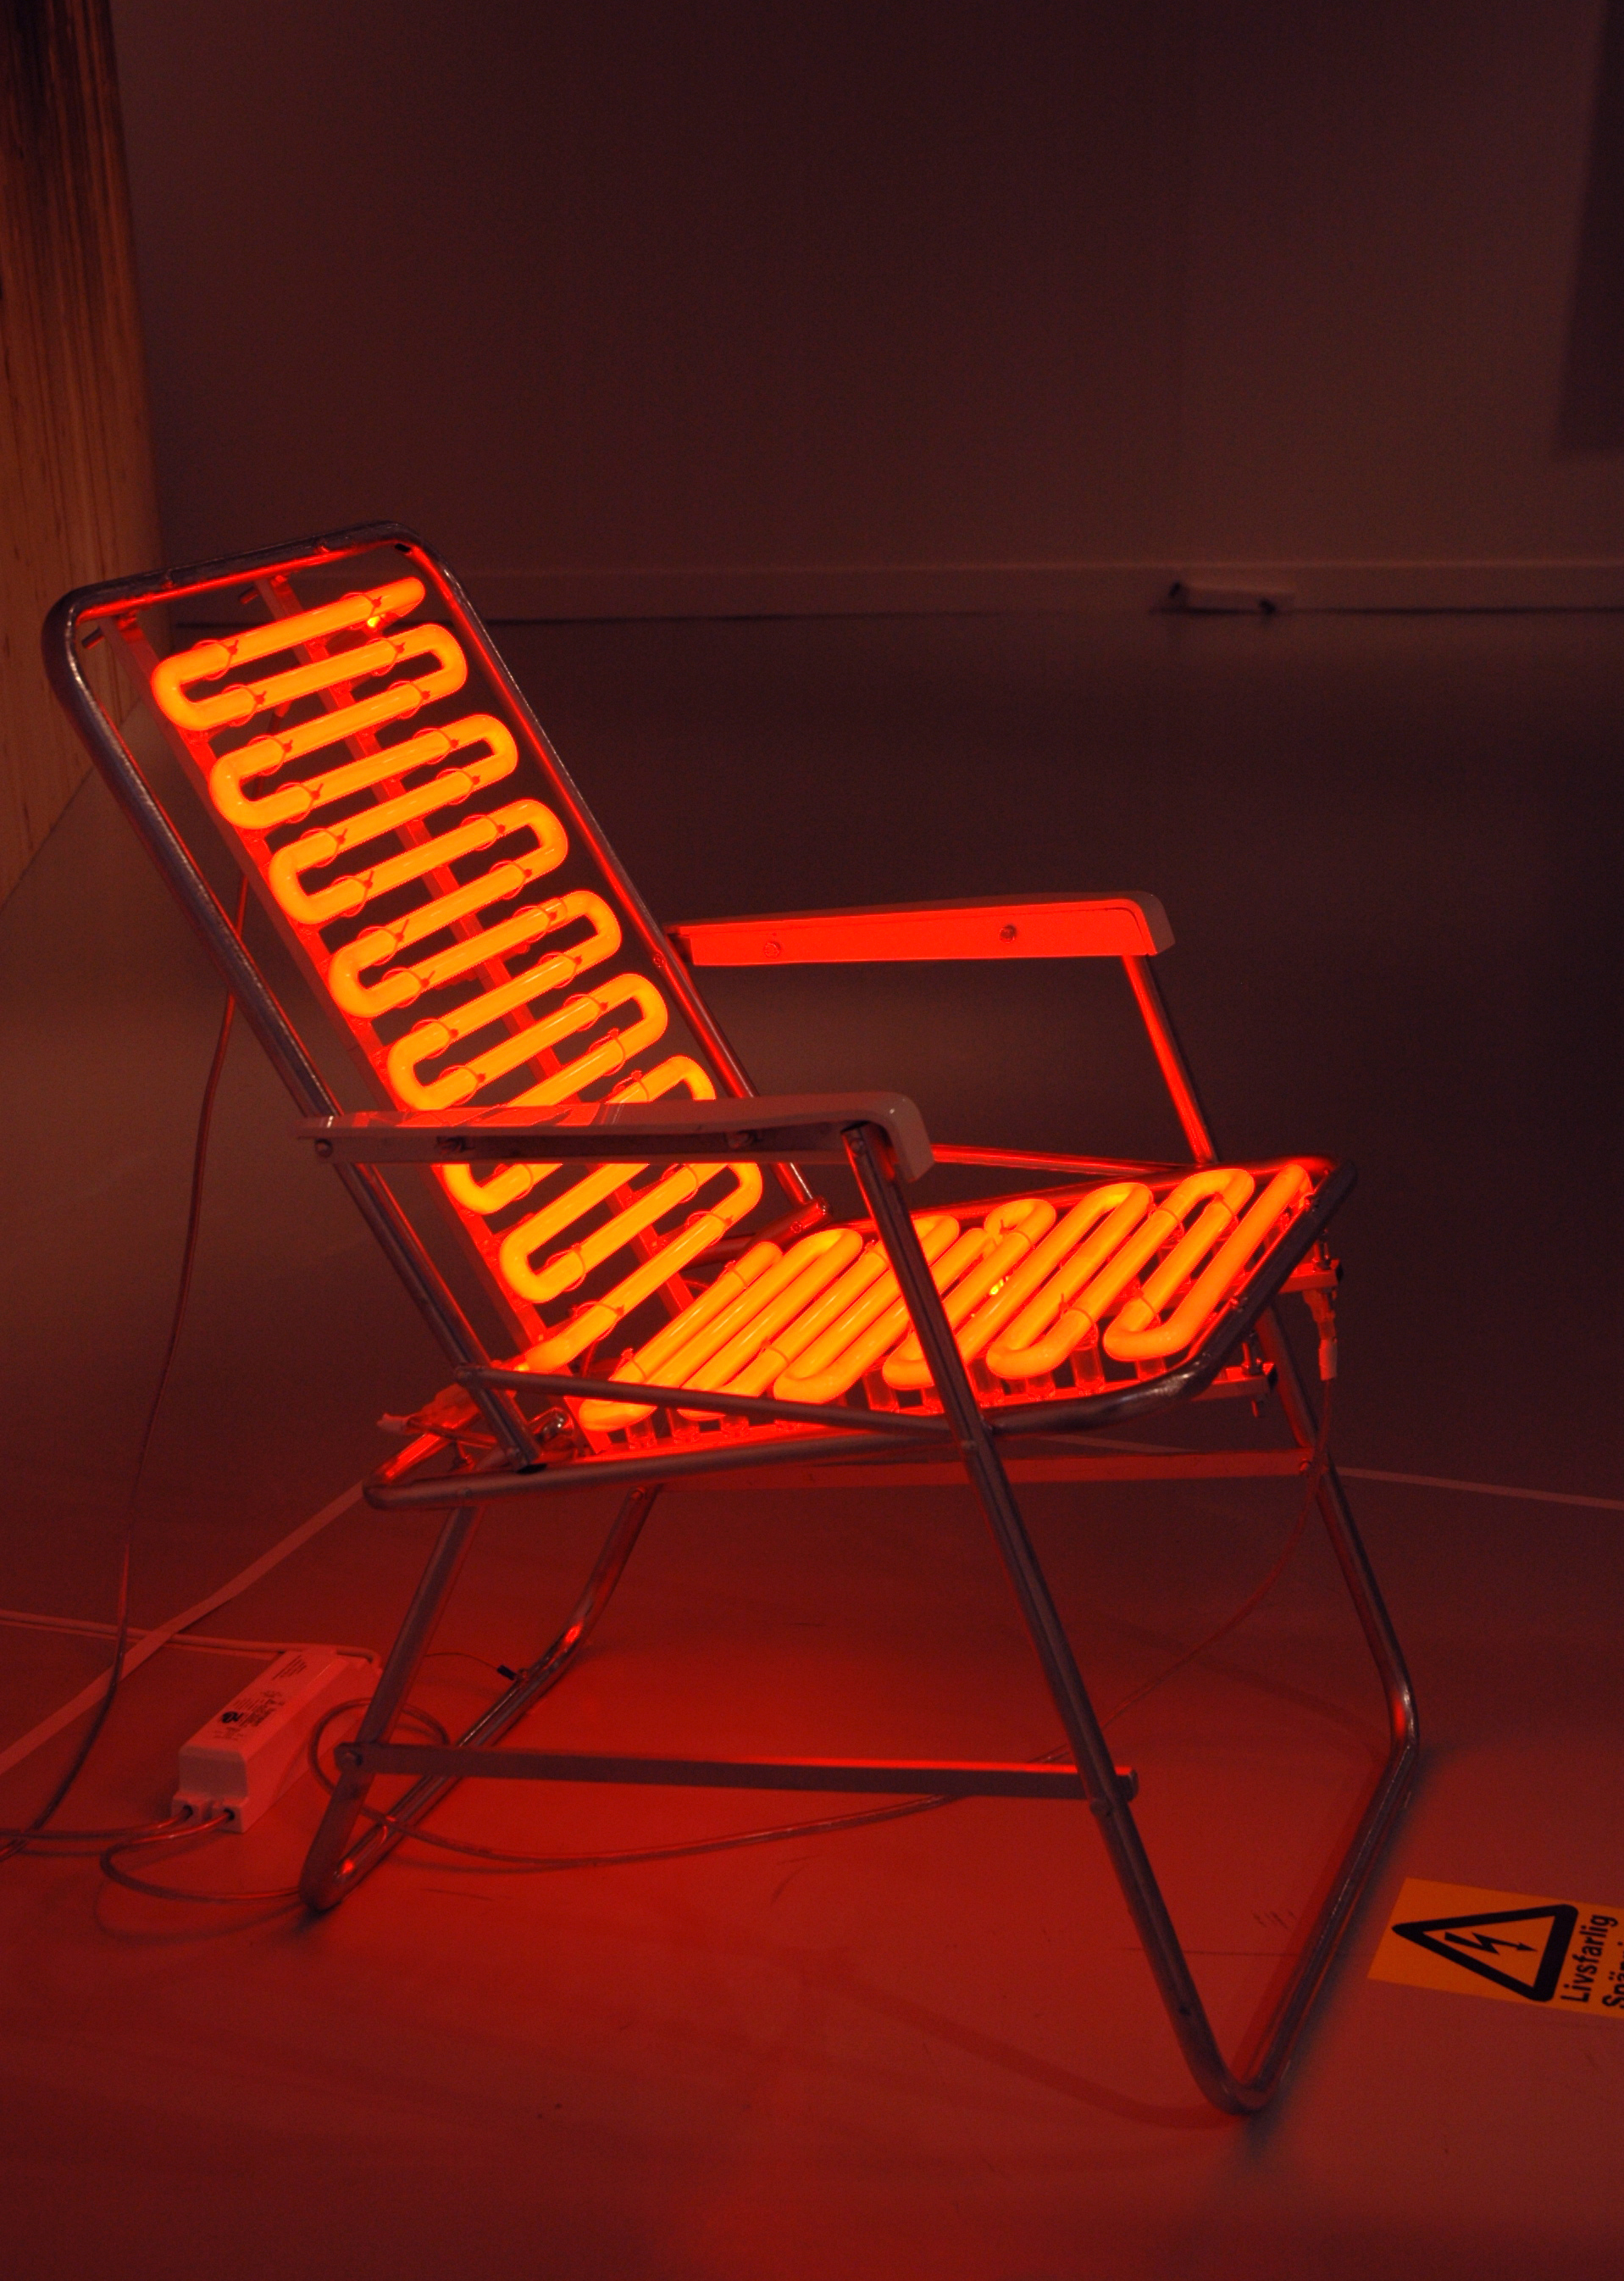 Joakim Allgulander - Burned, installation, neon and sun chair